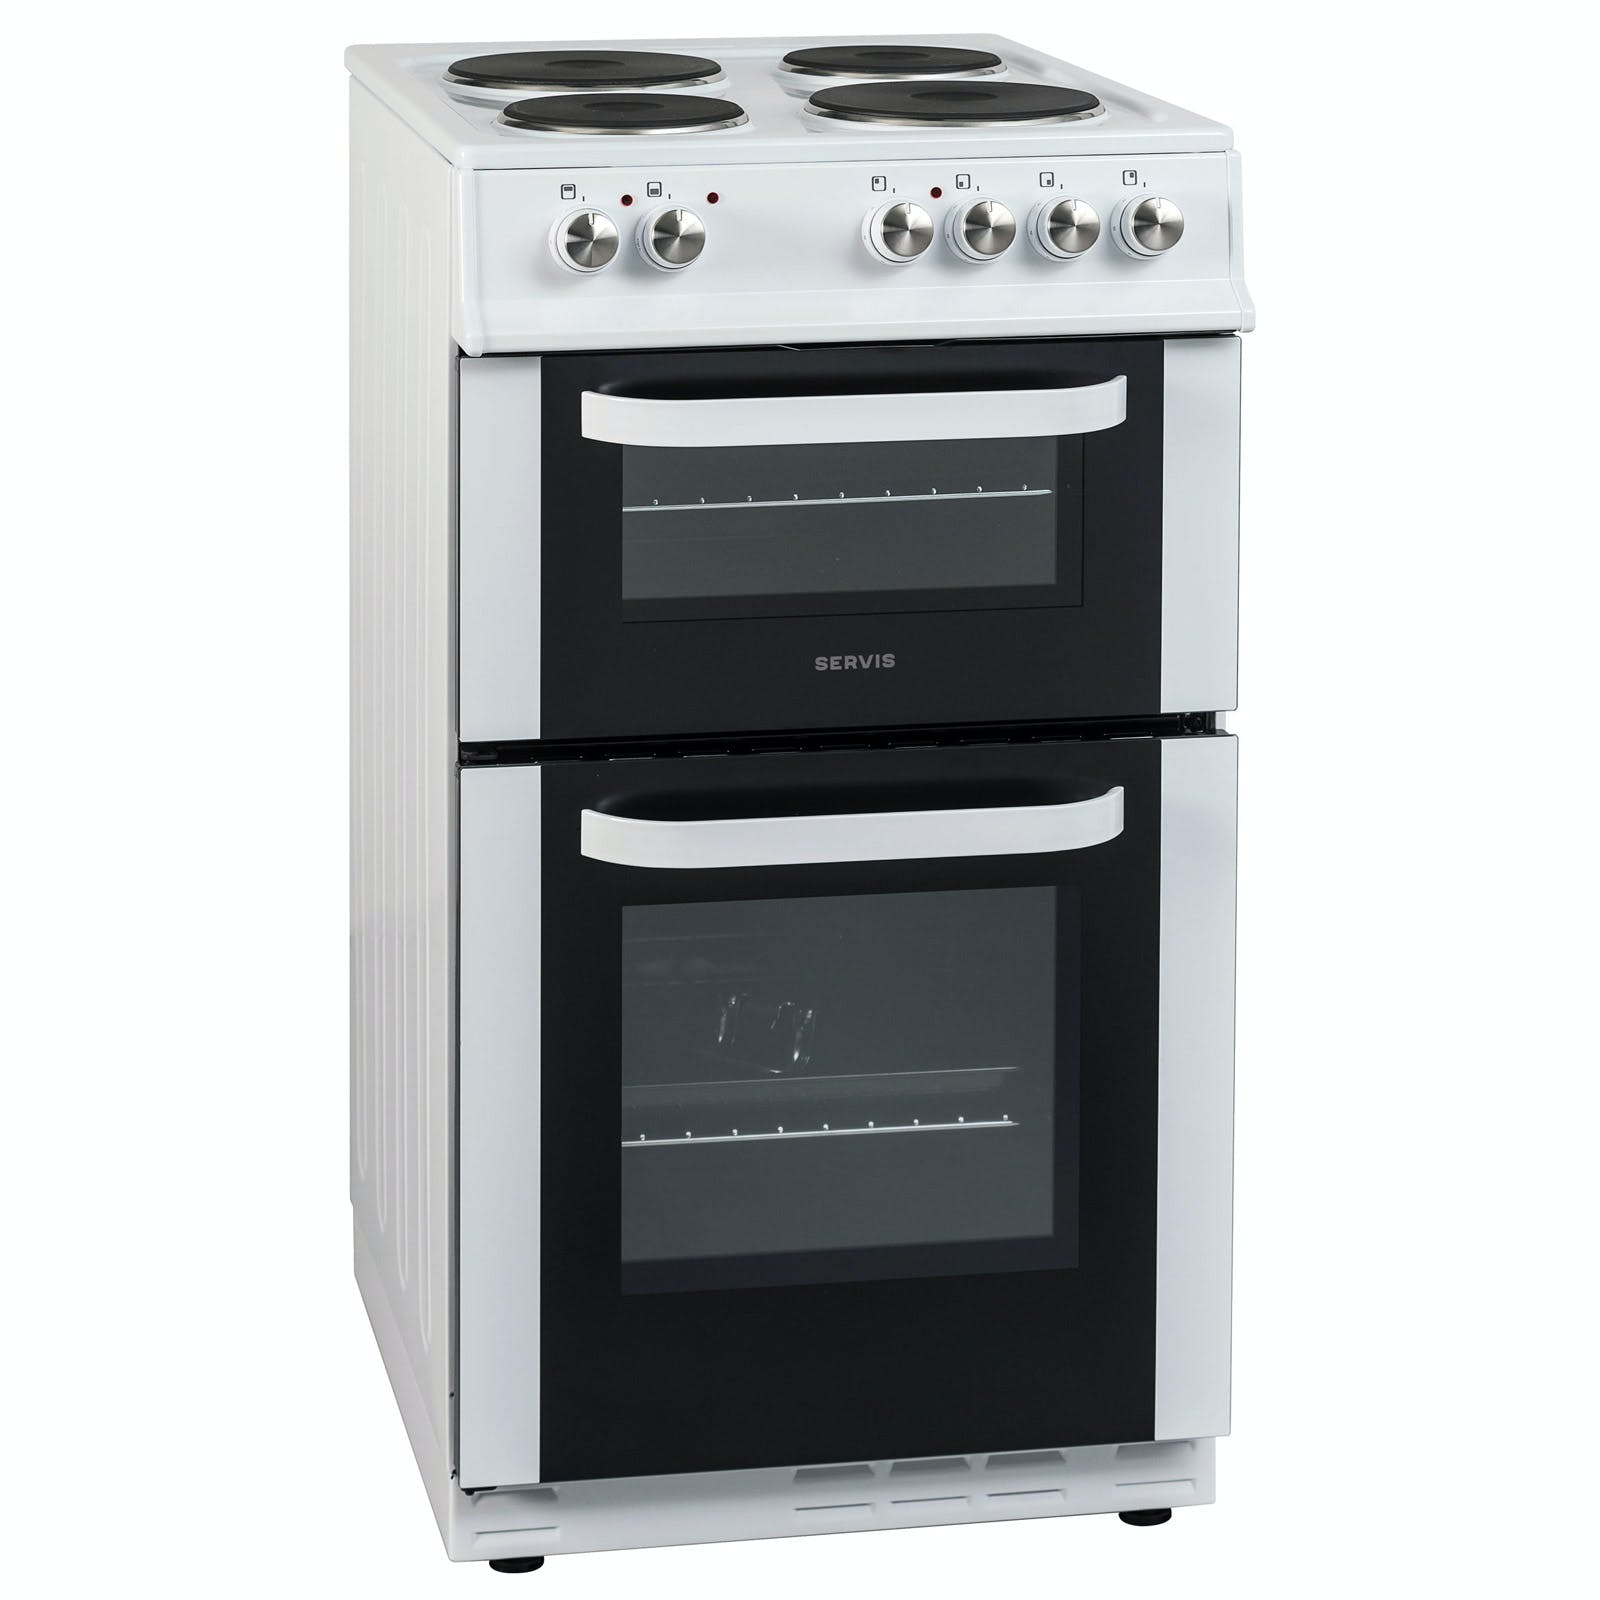 Servis Ste50w 50cm Twin Cavity Electric Cooker In White A